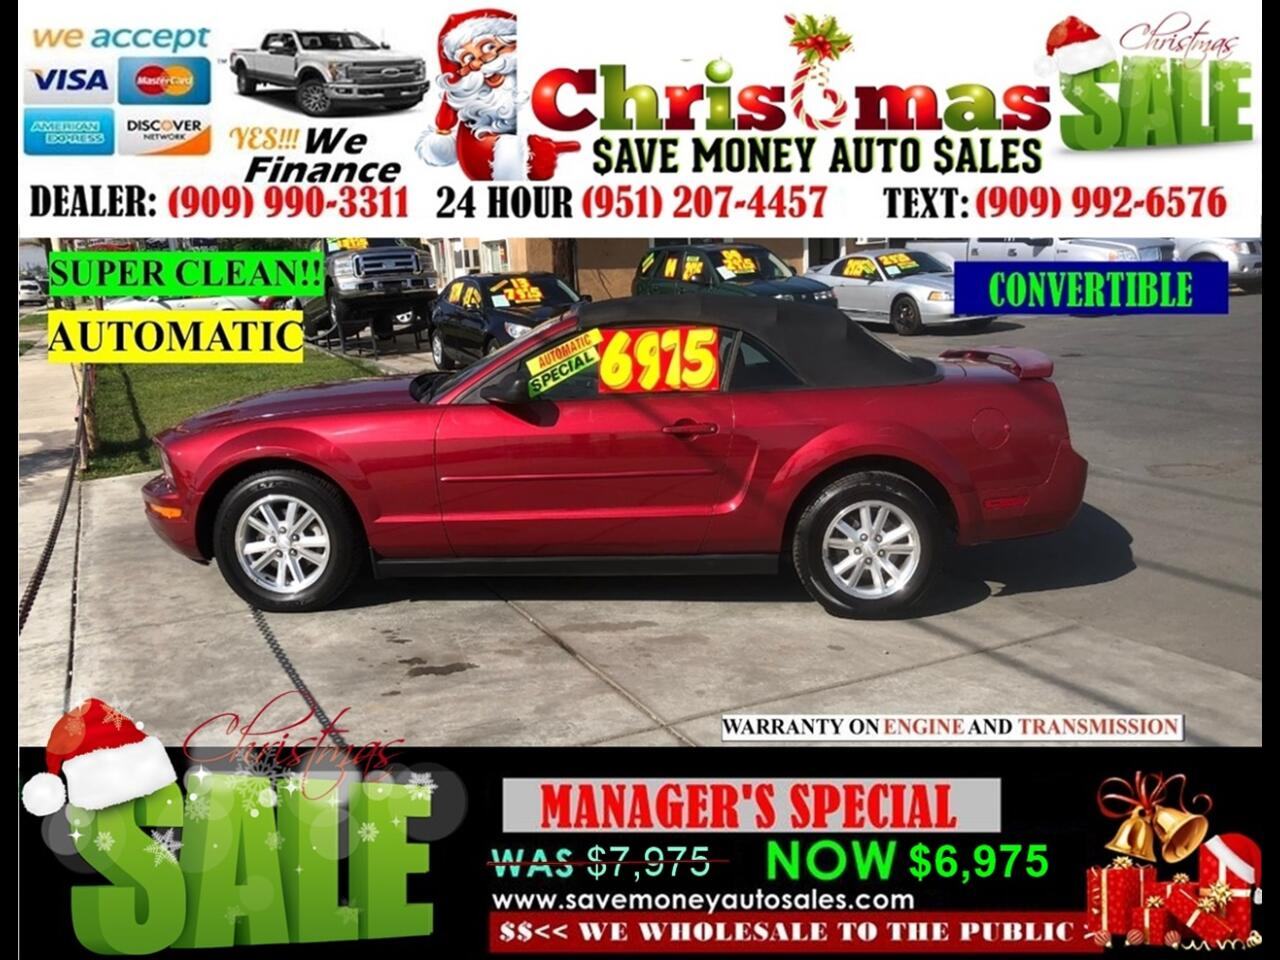 2007 Ford Mustang CONVERTIBLE, EXTRA CLEAN!!!!